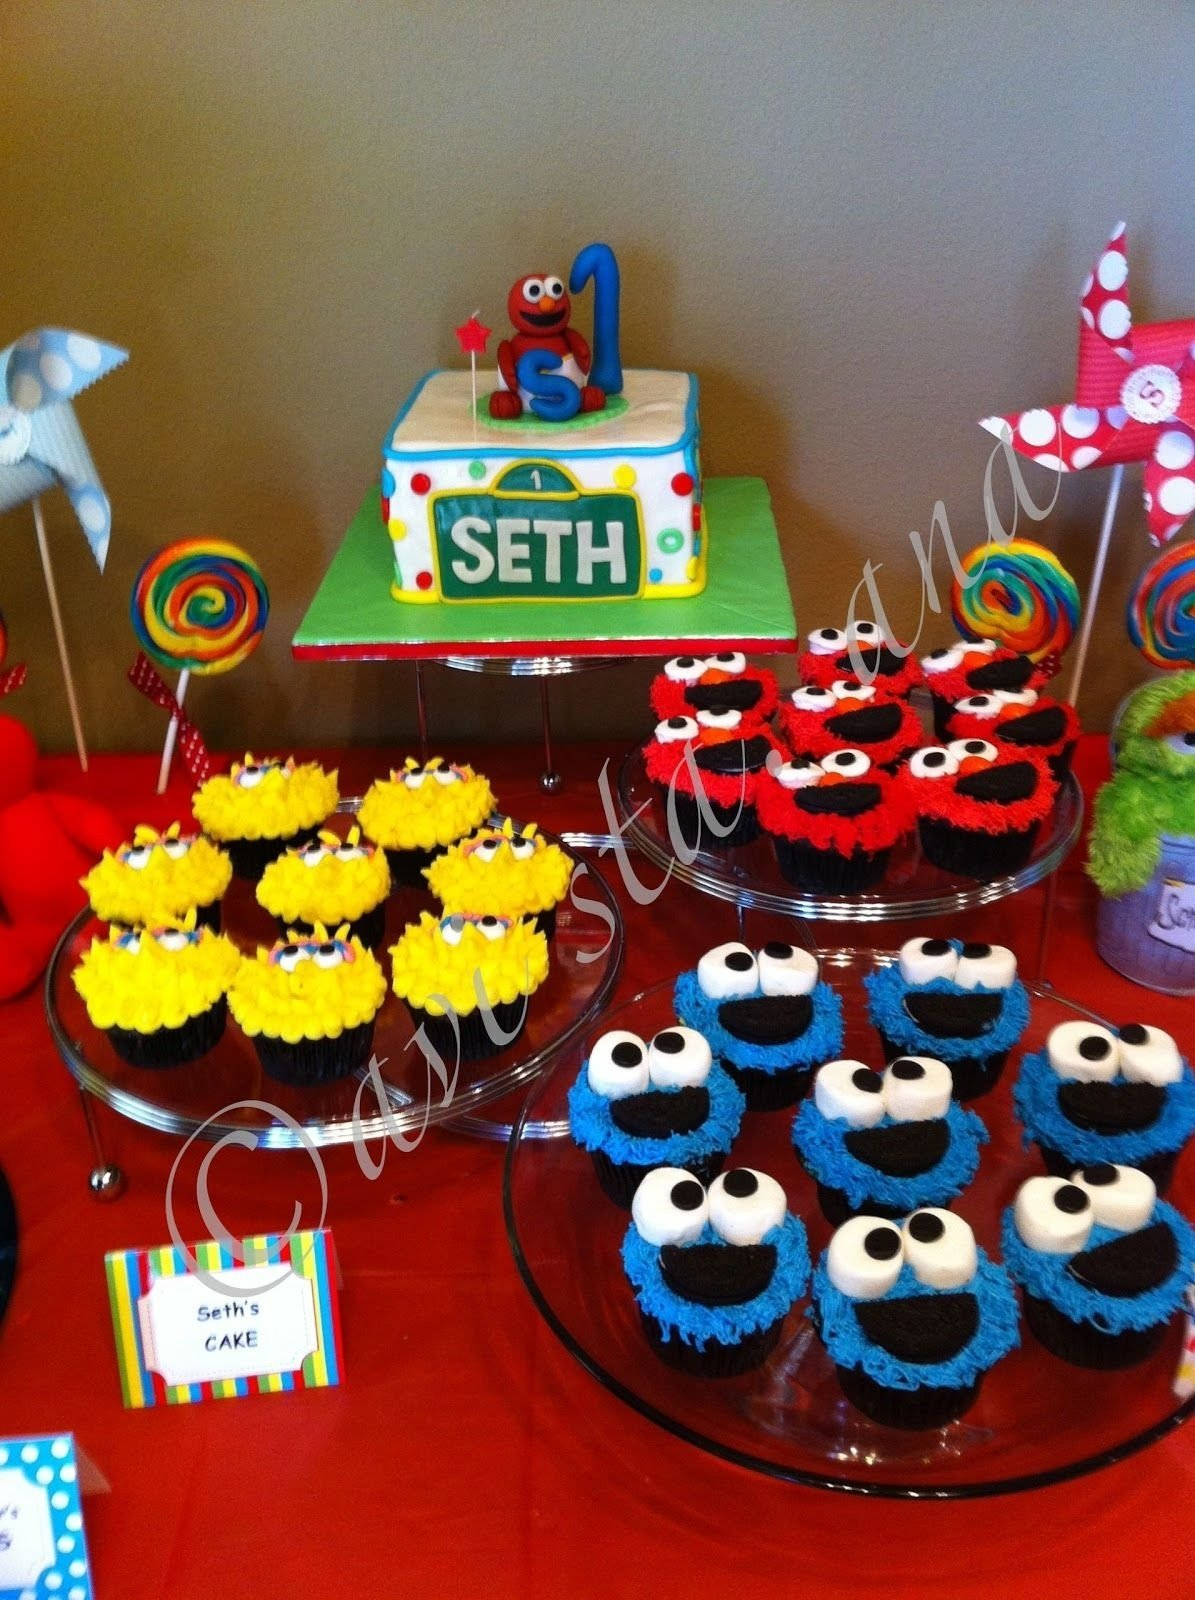 10 Most Recommended Sesame Street 1St Birthday Ideas sesame street birthday party ideas want to make elmo cupcakes for 2020